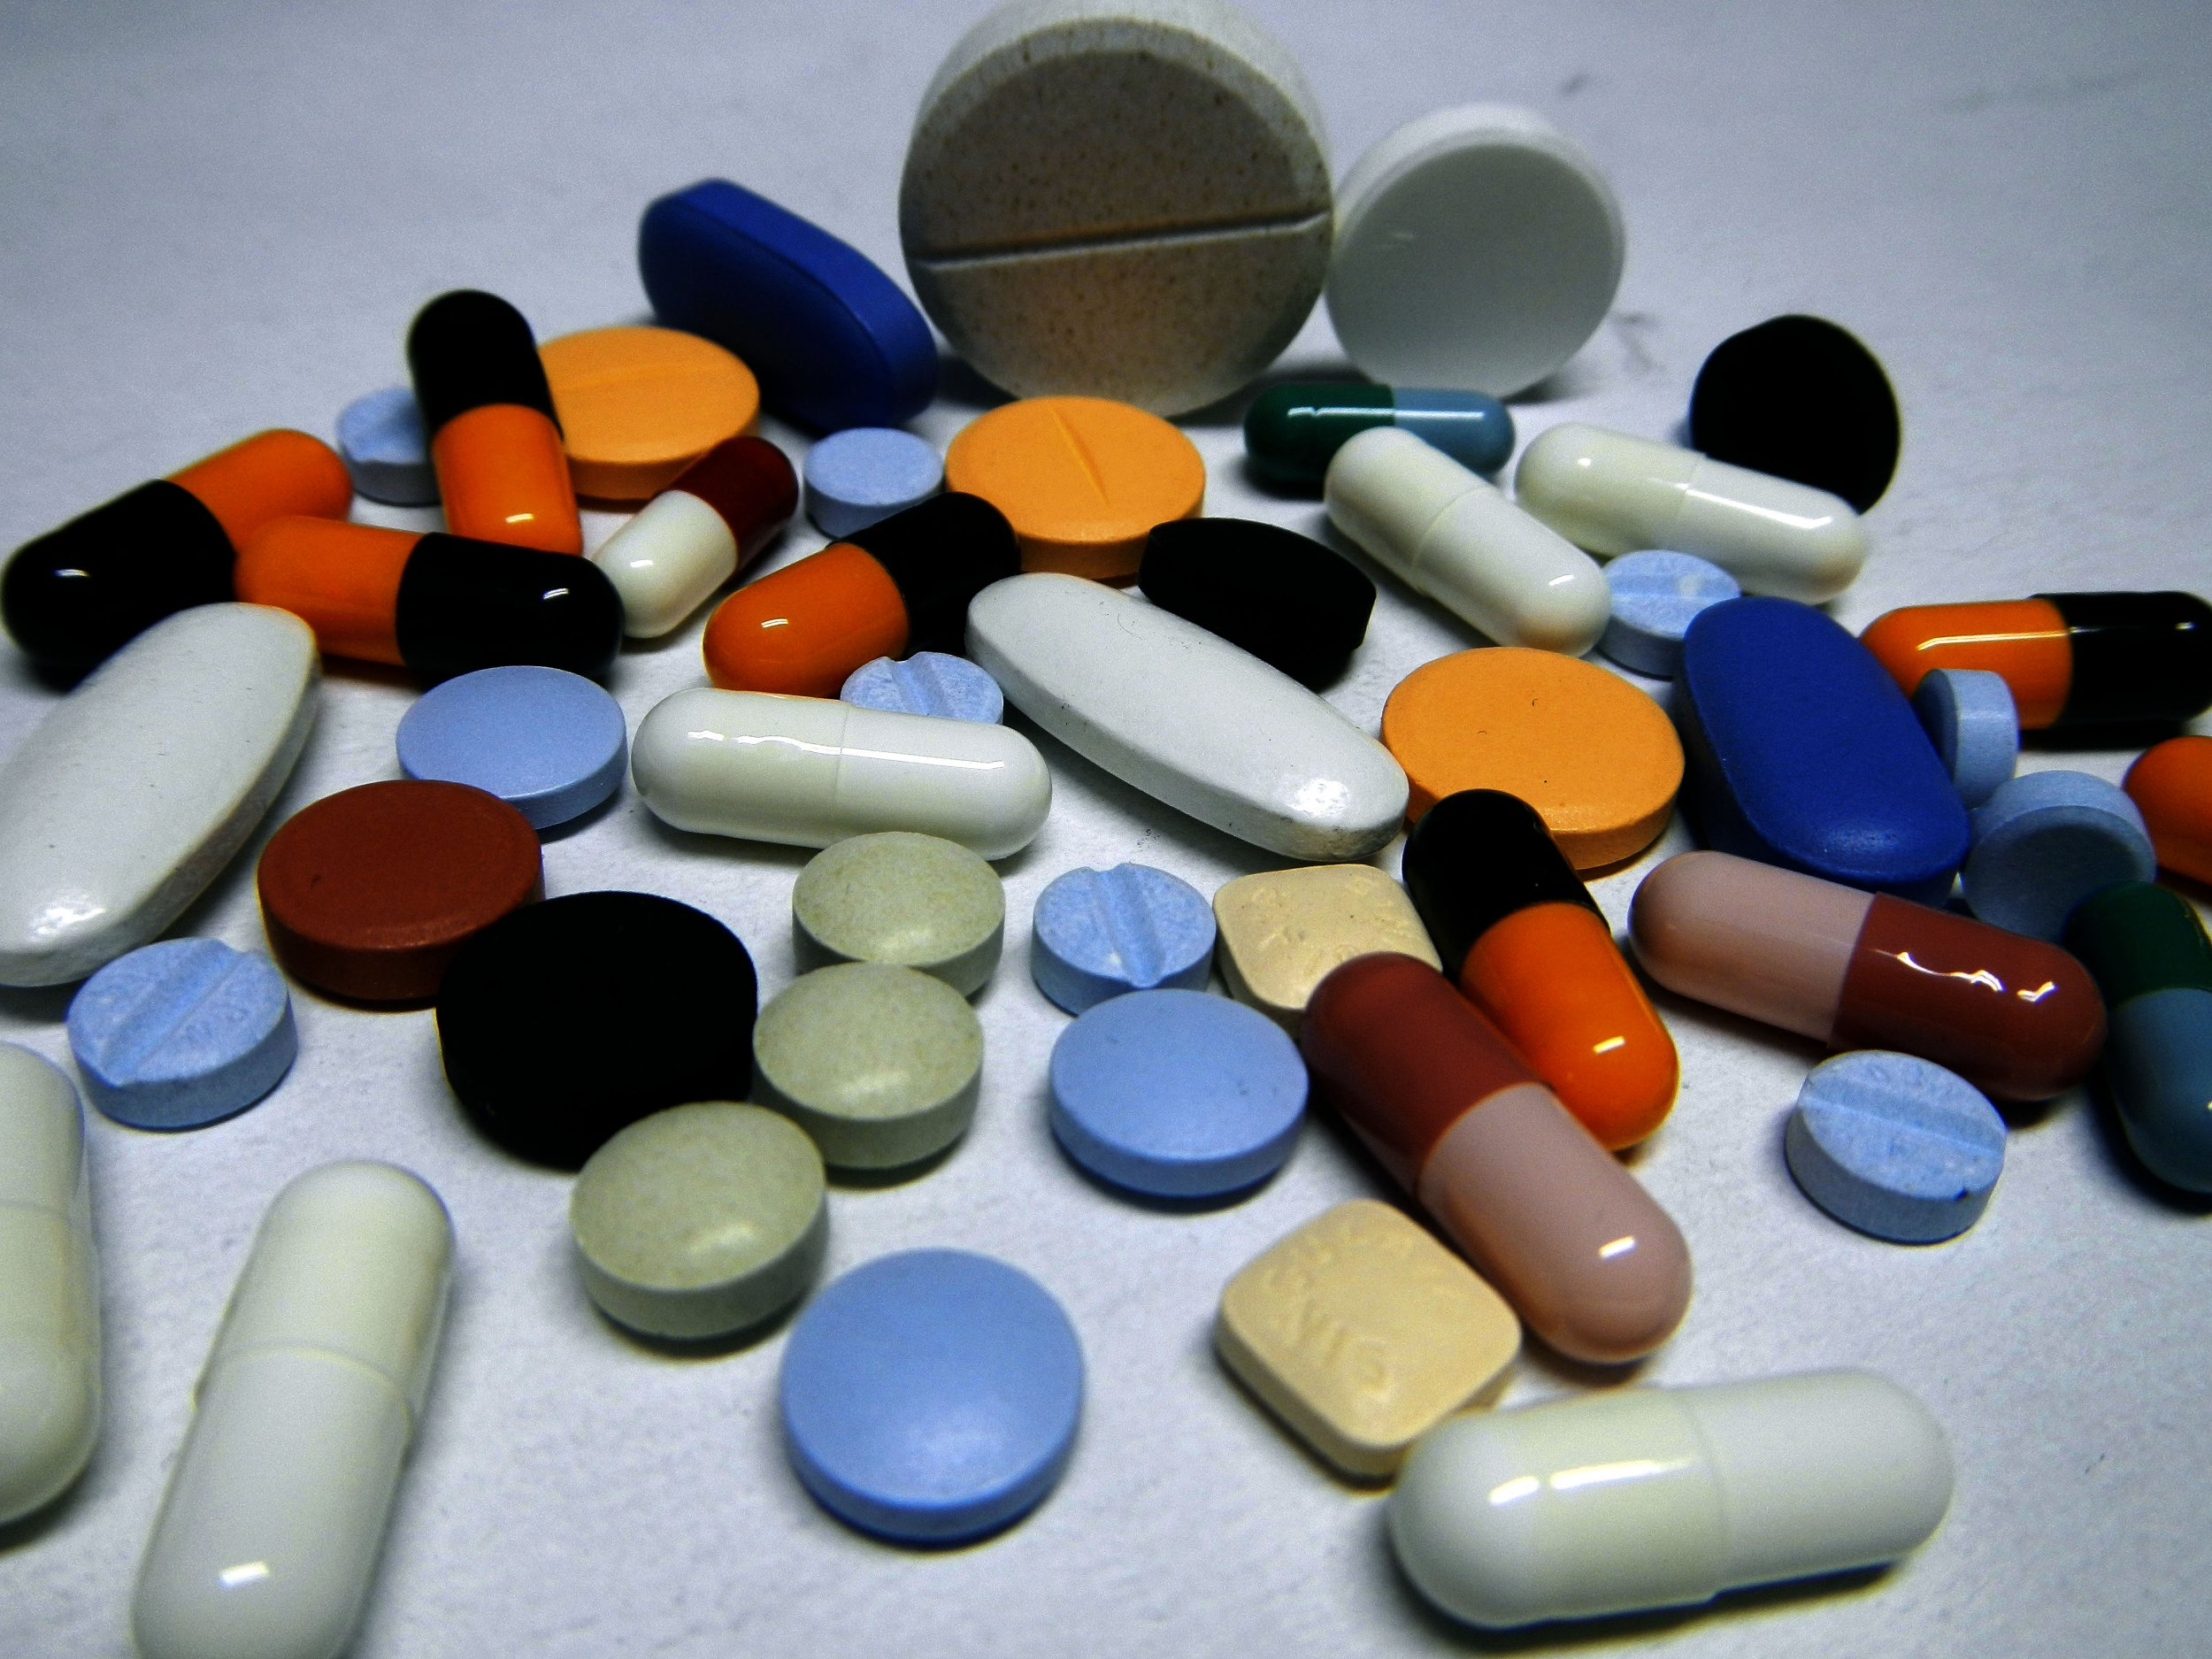 Generic Anxiety Drugs Online